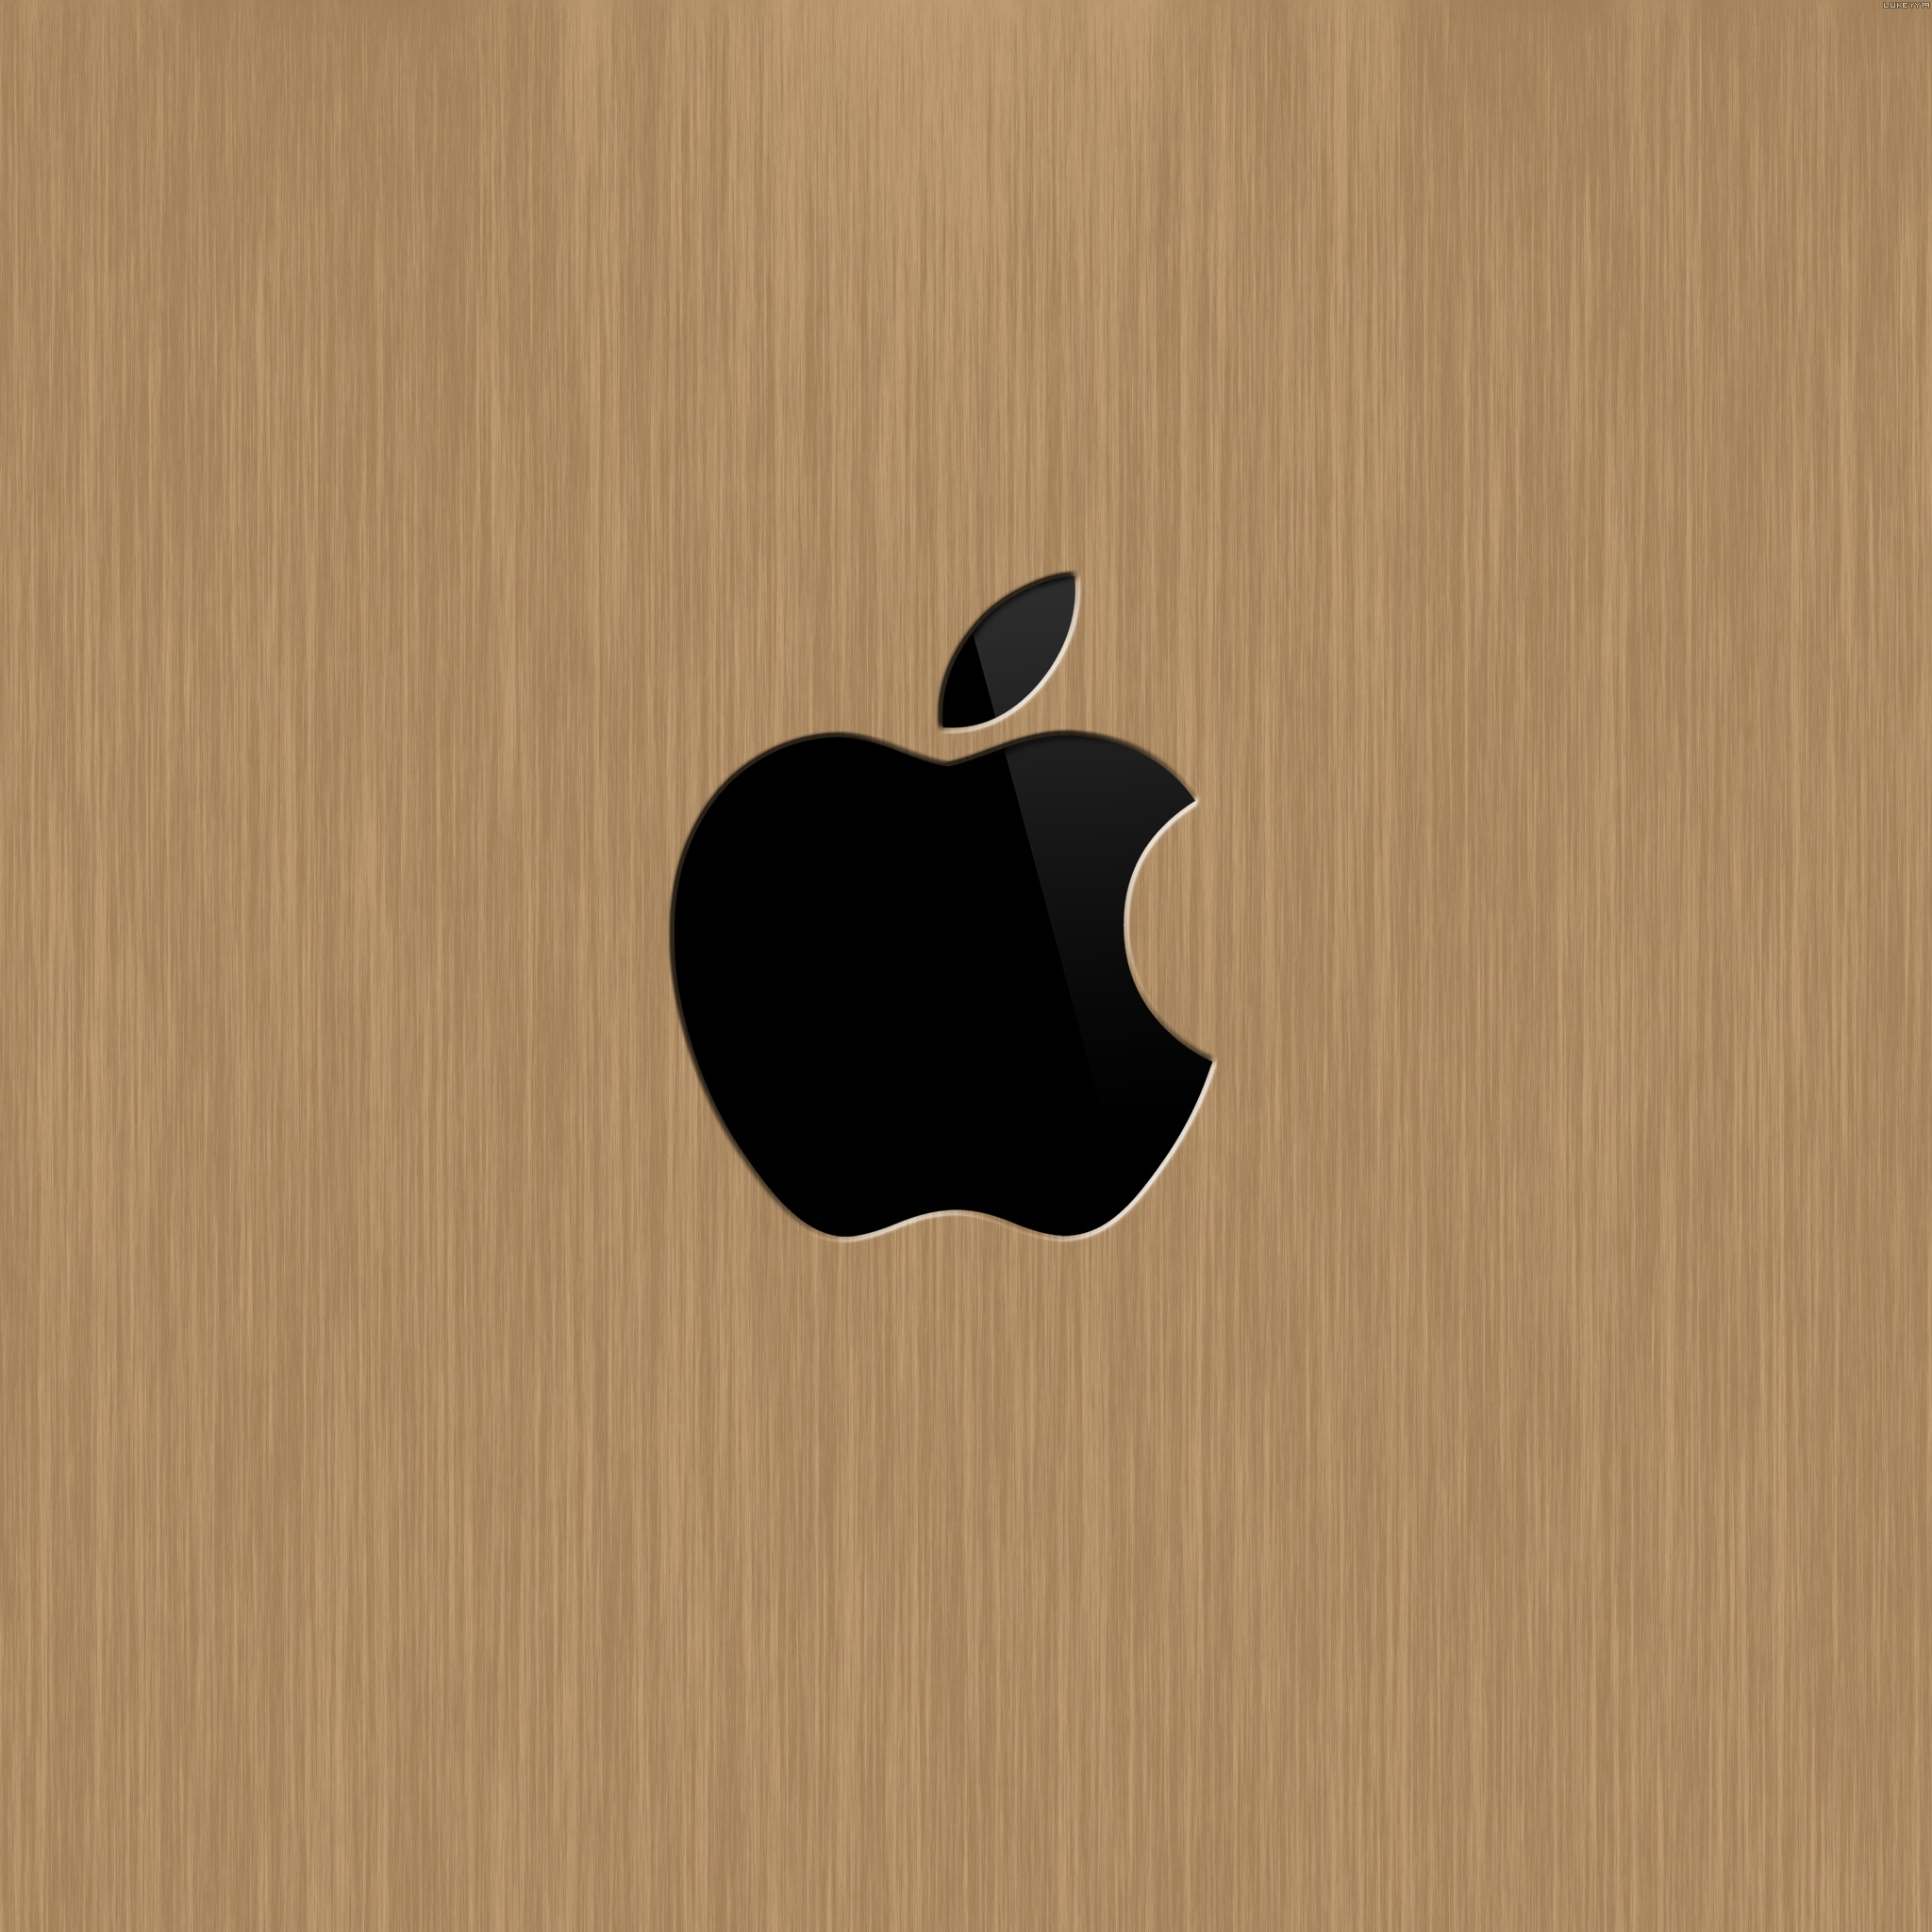 Newest iPad 3 wallpapers Apple Logo Wallpapers Wood Apple Logo 2048x2048